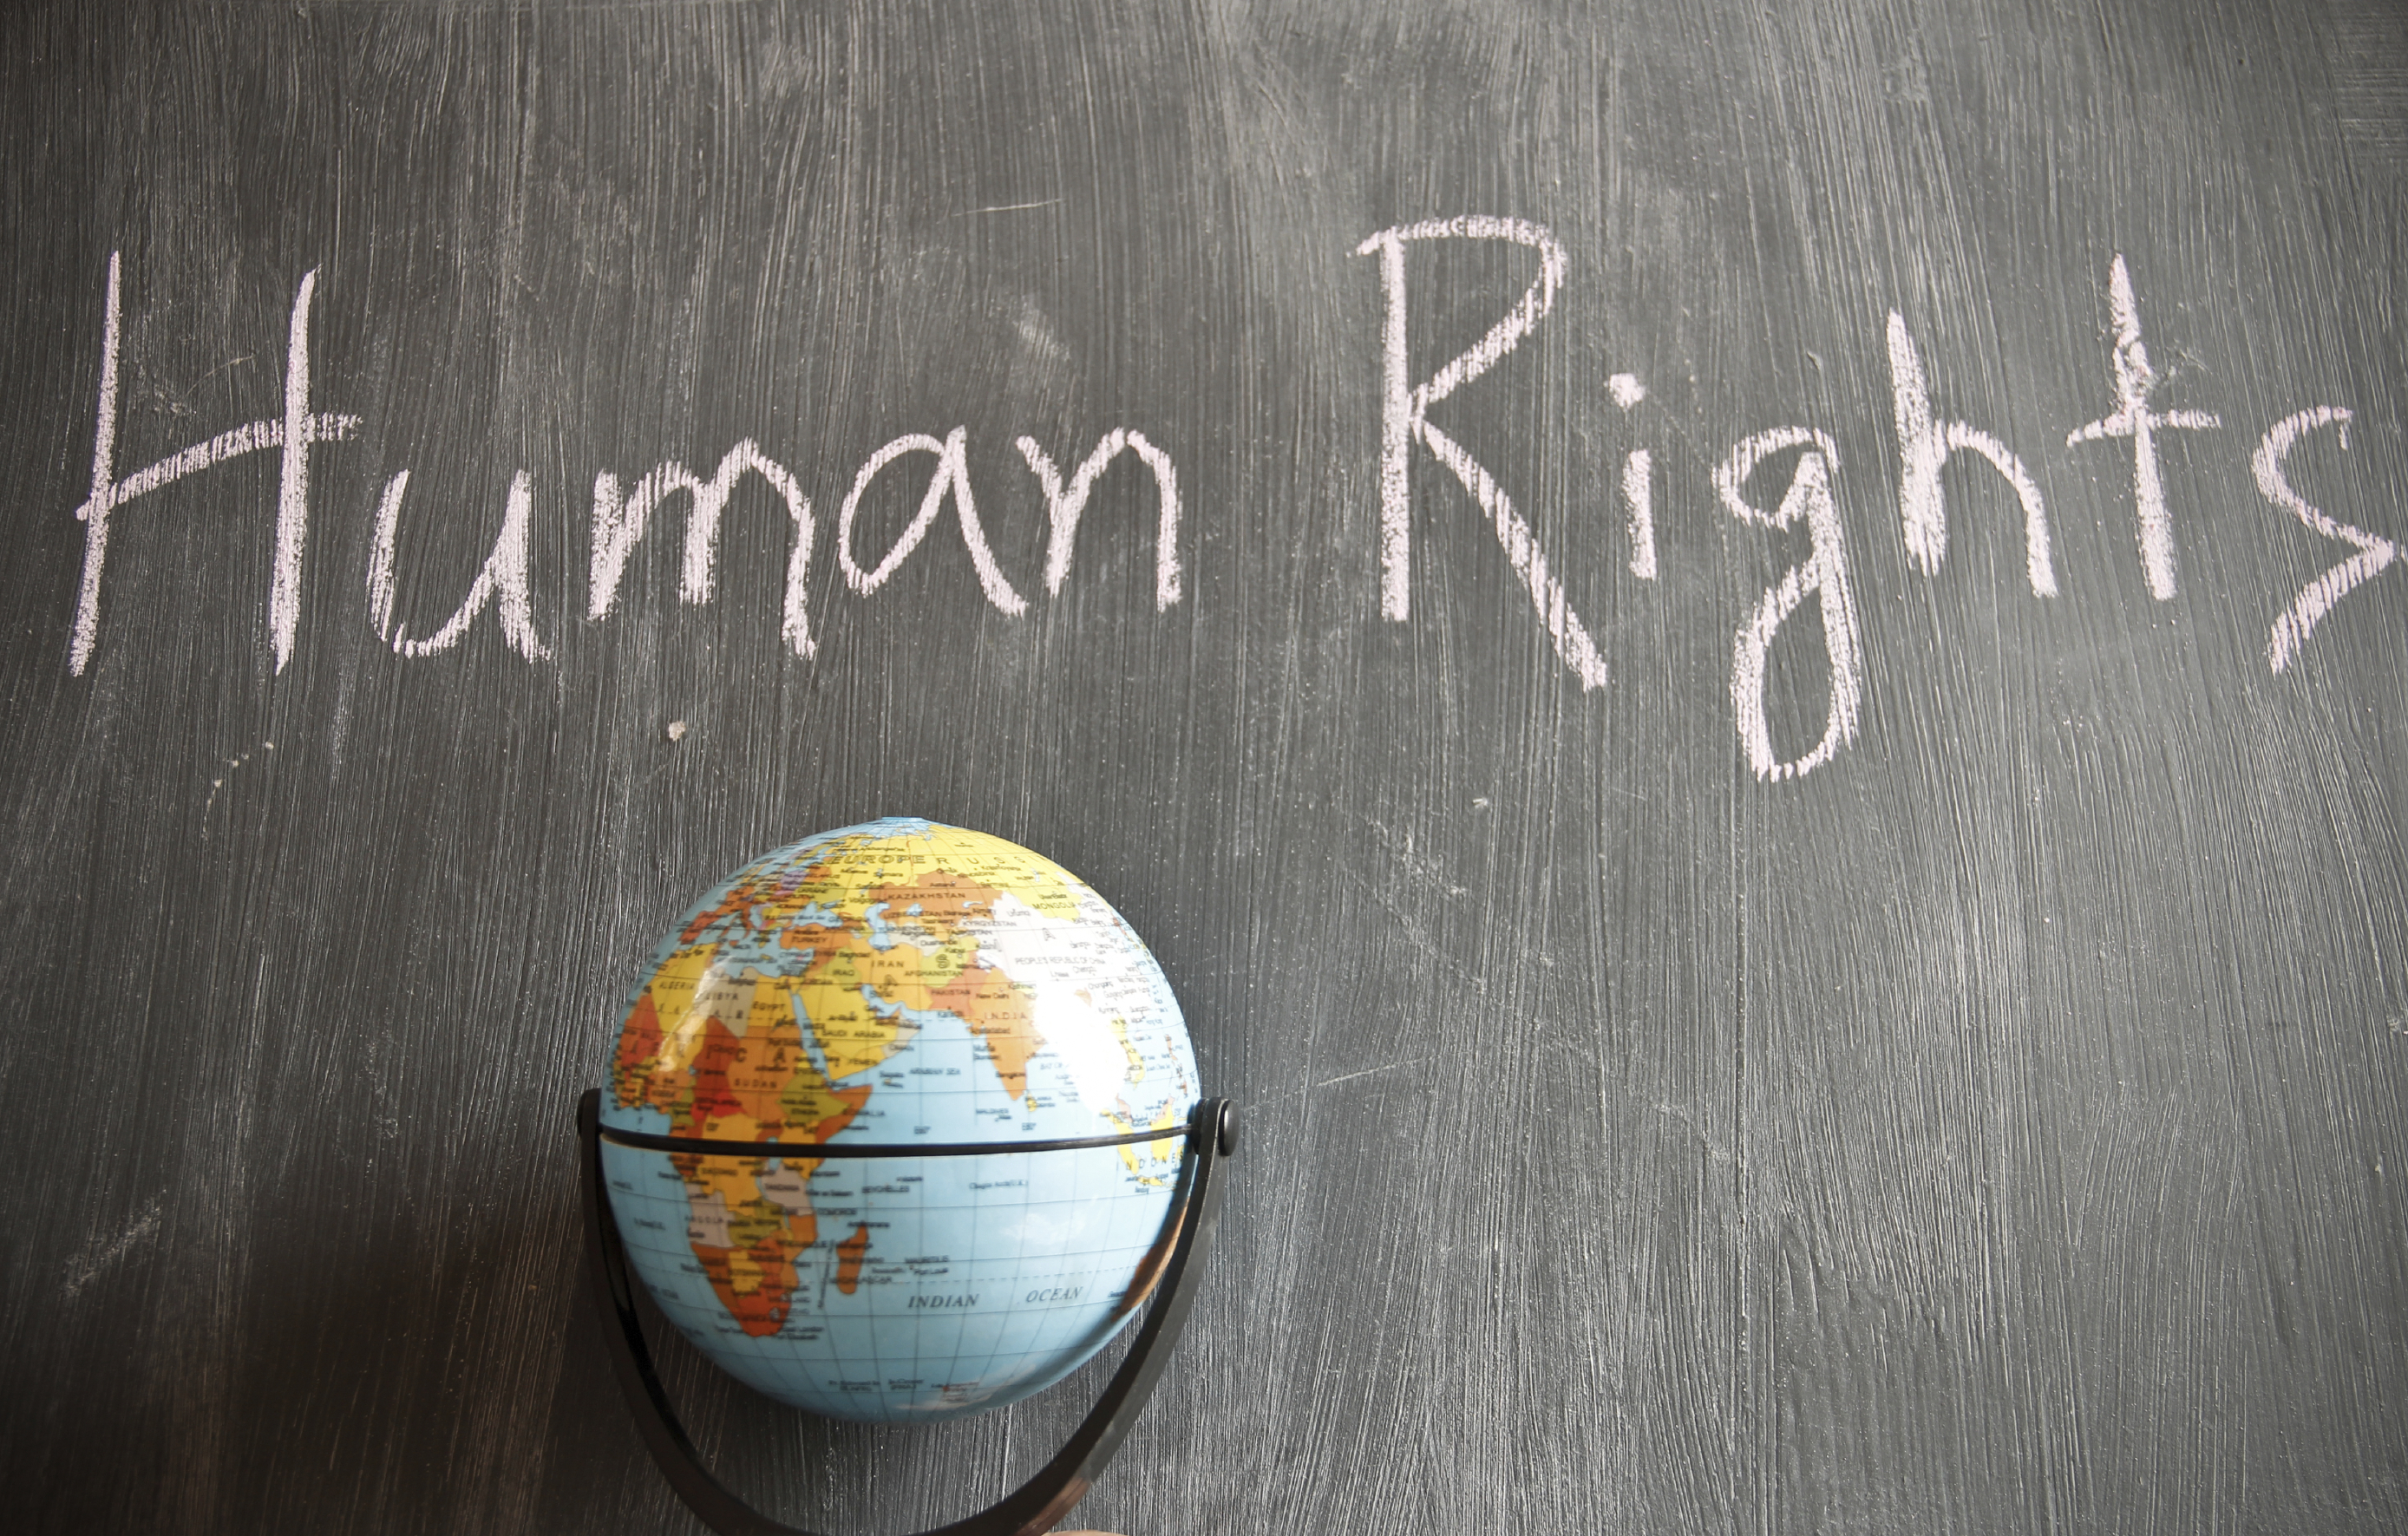 Do You Know That You Have A Right?